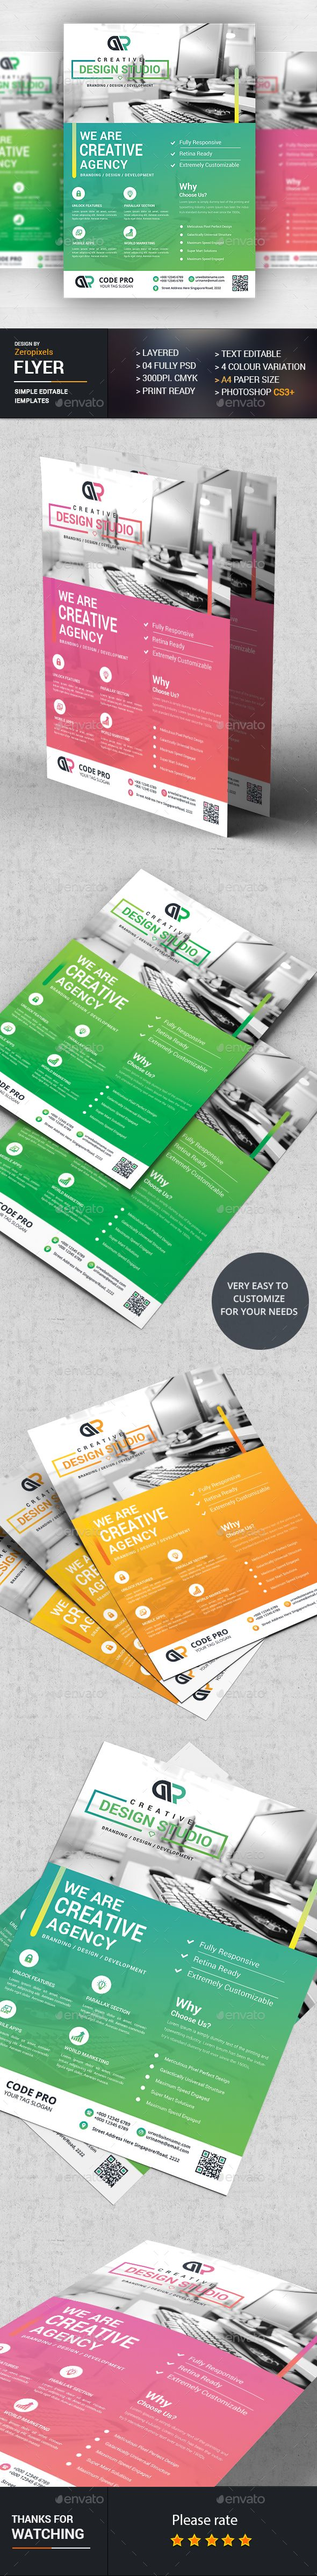 Corporate Web Flyer Design - Flyers Print Template PSD. Download here: http://graphicriver.net/item/corporate-web-flyer/16881175?ref=yinkira                                                                                                                                                                                 More